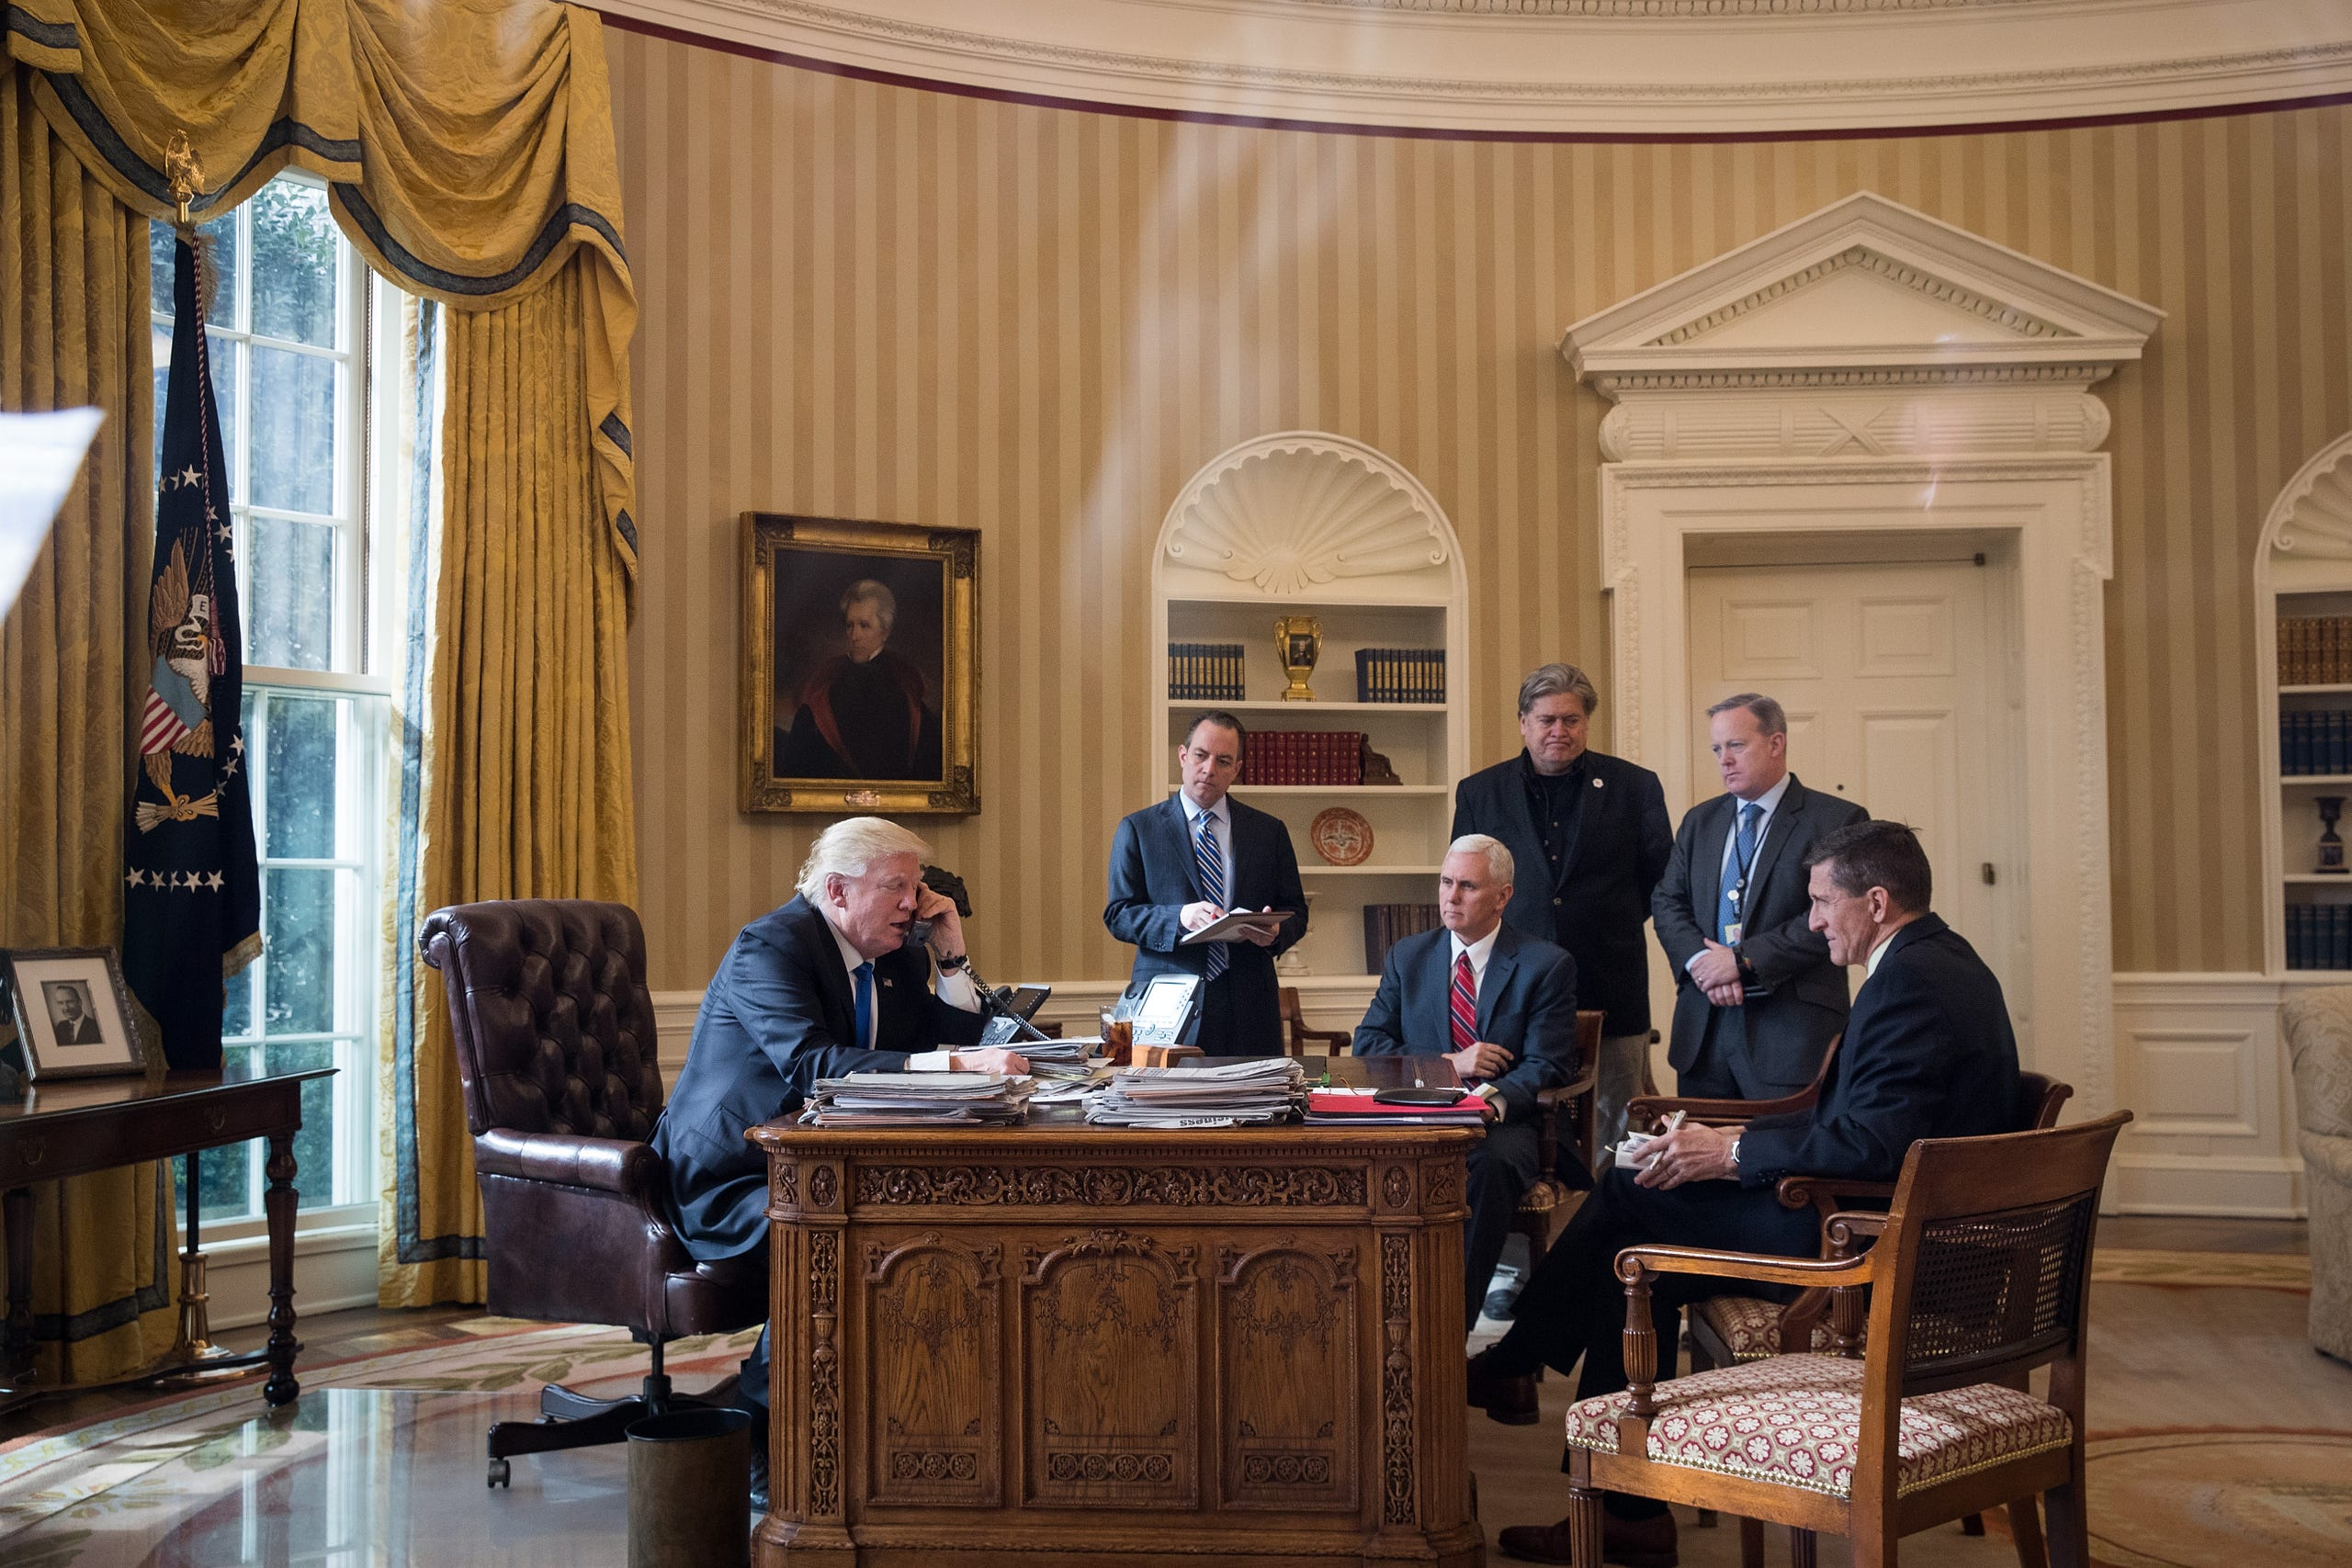 All of these President's men have taken their leave save Vice President Pence.  President Donald Trump speaks on the phone with Russian President Vladimir Putin in the Oval Office of the White House on Jan. 28, 2017, along with Vice President Pence and Chief of Staff Reince Priebus, Chief Strategist Steve Bannon, Press Secretary Sean Spicer and National Security Advisor Michael Flynn.    In the first seven months of his administration, Trump has seen the departures of many senior aides including Priebus, Bannon, Spicer and Flynn.